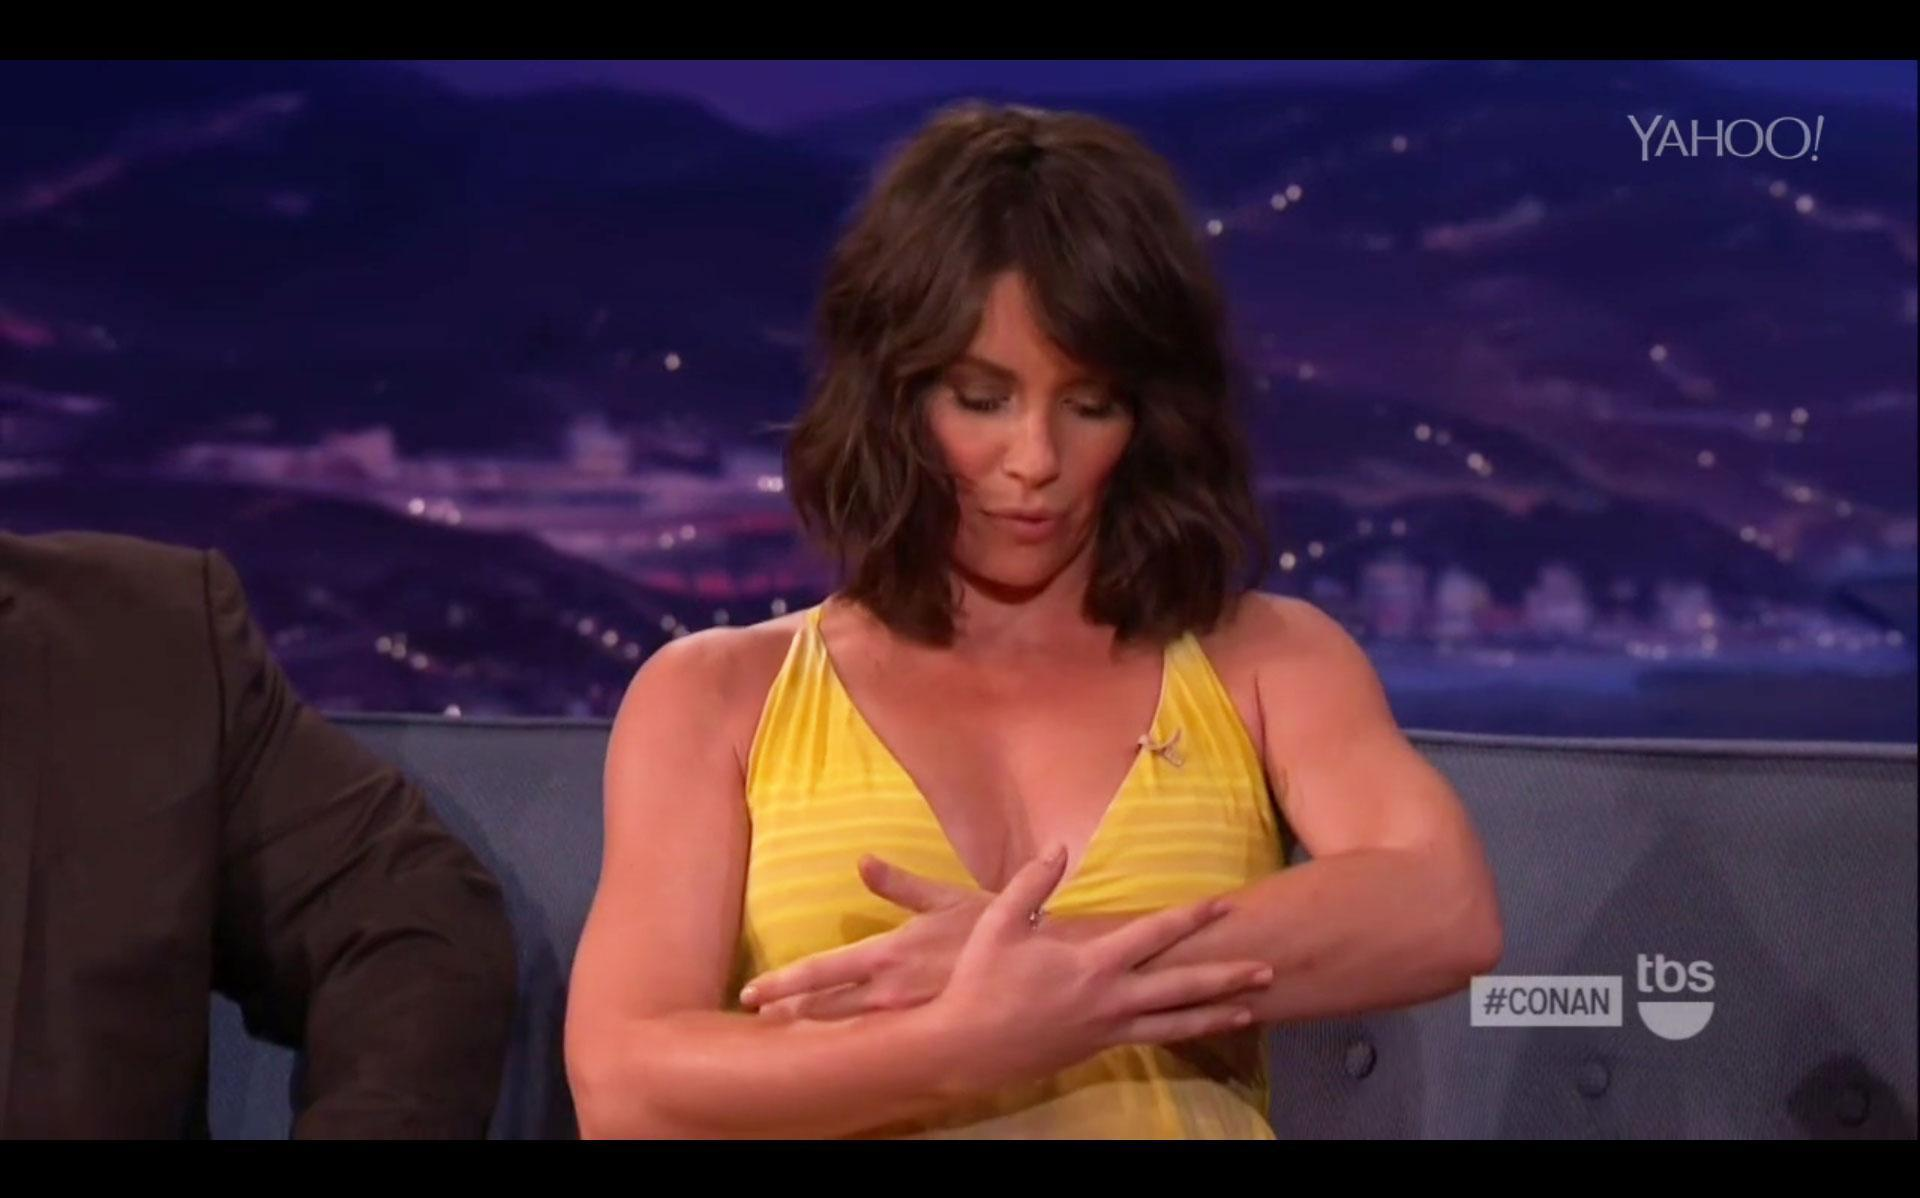 Evangeline Lilly Reveals She's Pregnant in the Most